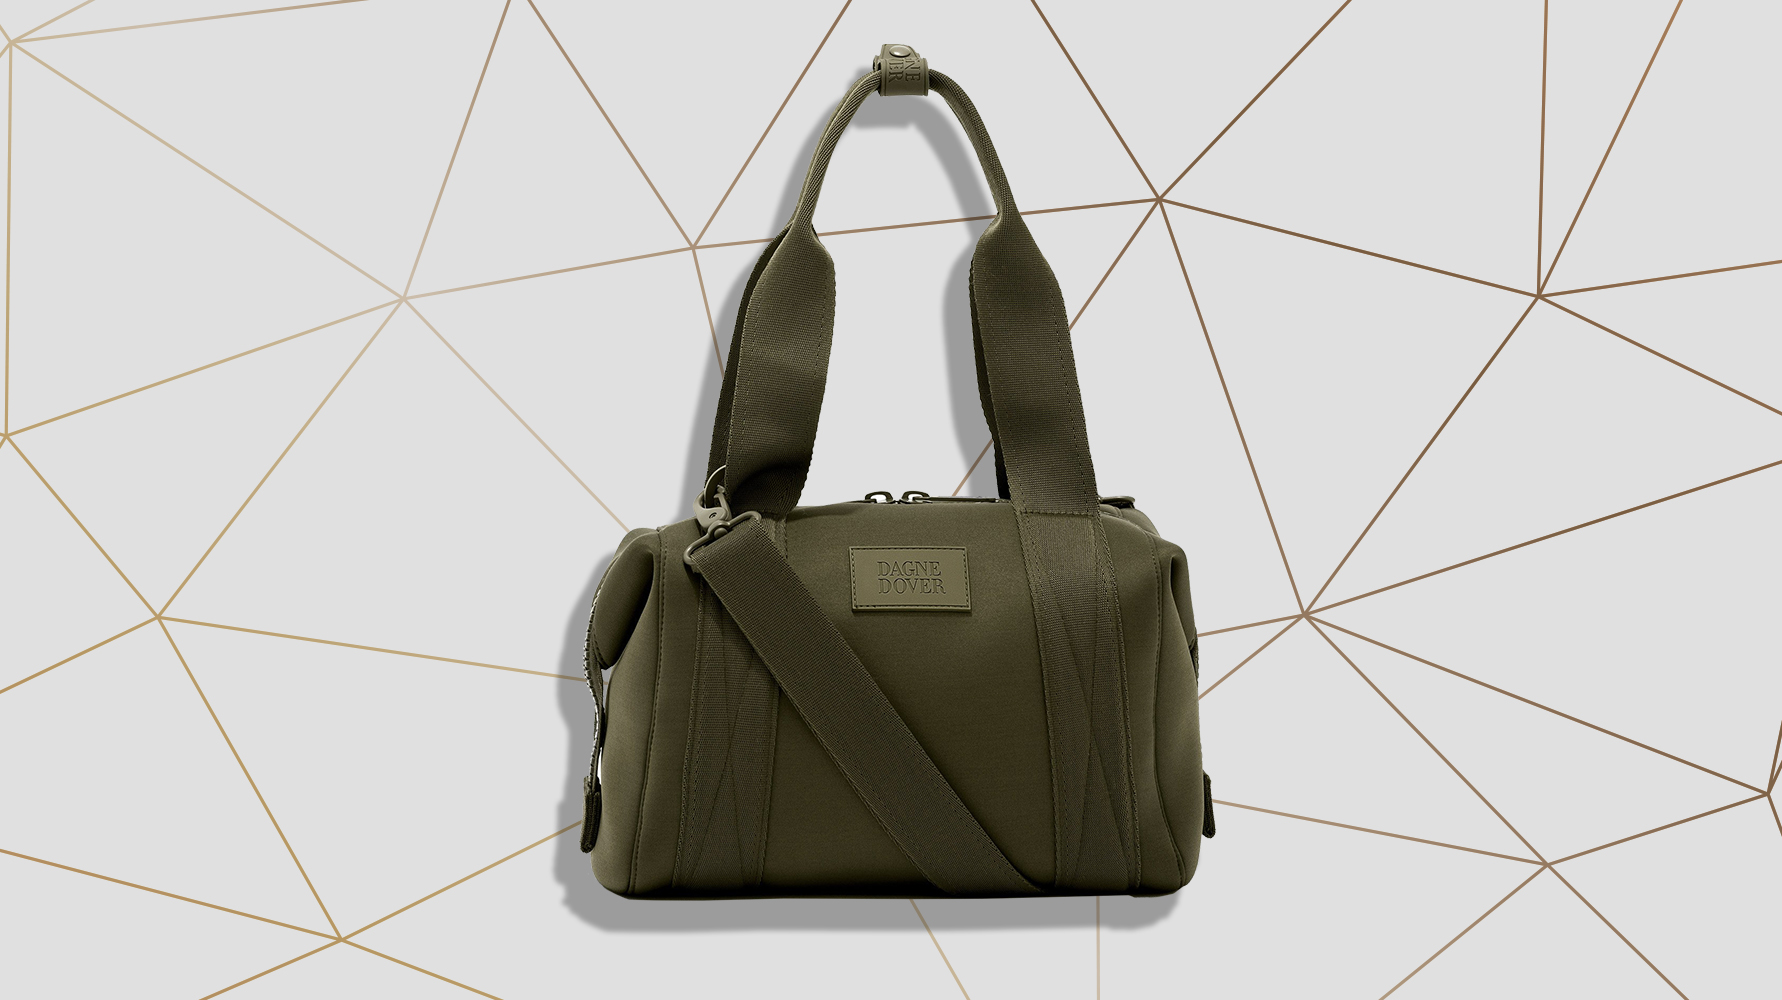 10 Stylish Gym Bags You Won't Be Embarrassed to Bring to Work